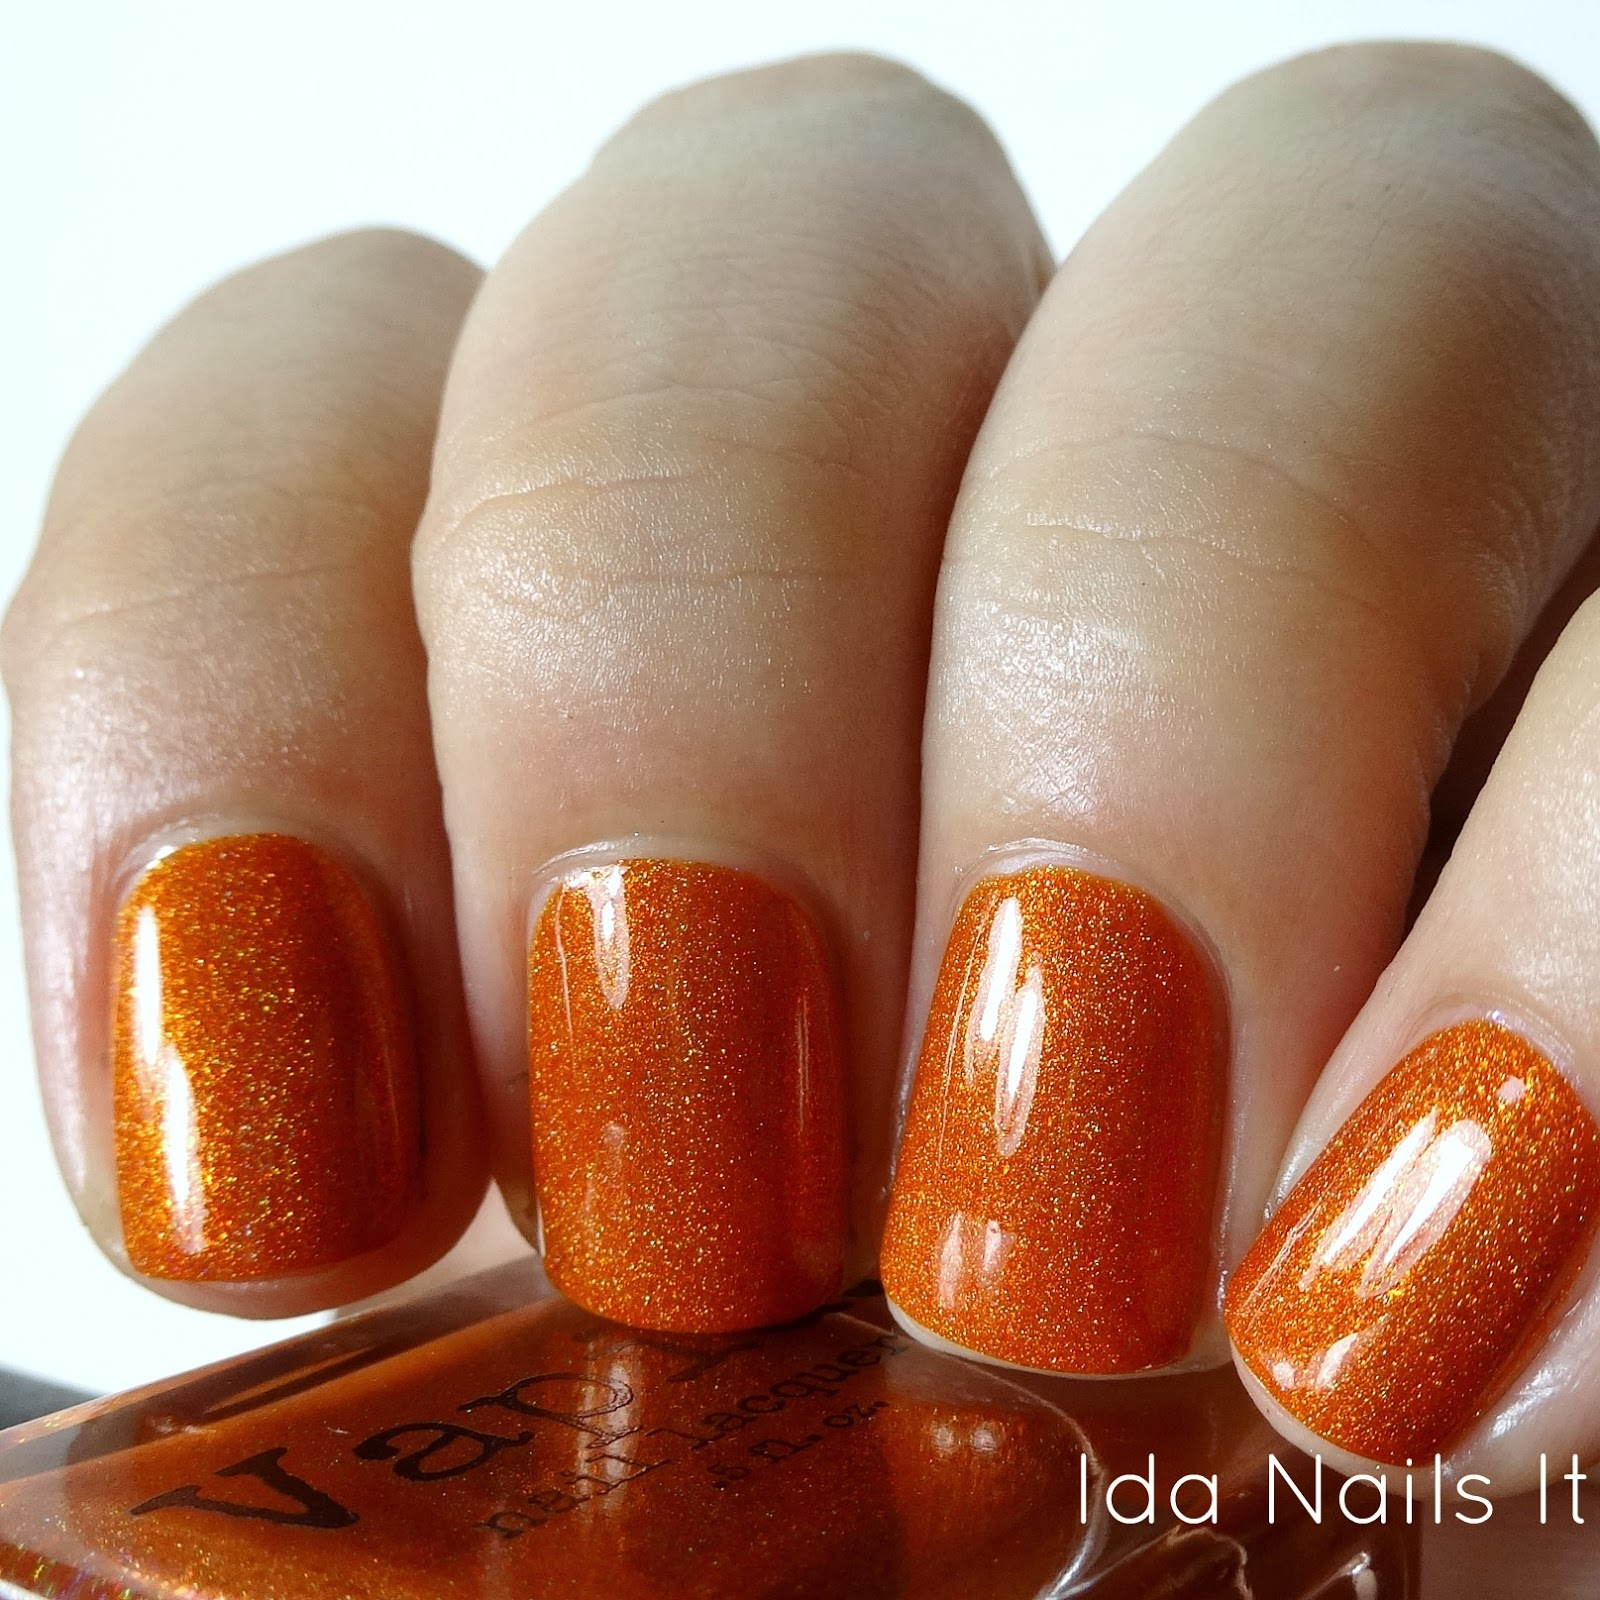 Ida Nails It: Vapid Lacquer Fall 2016 Collection: Swatches and Review